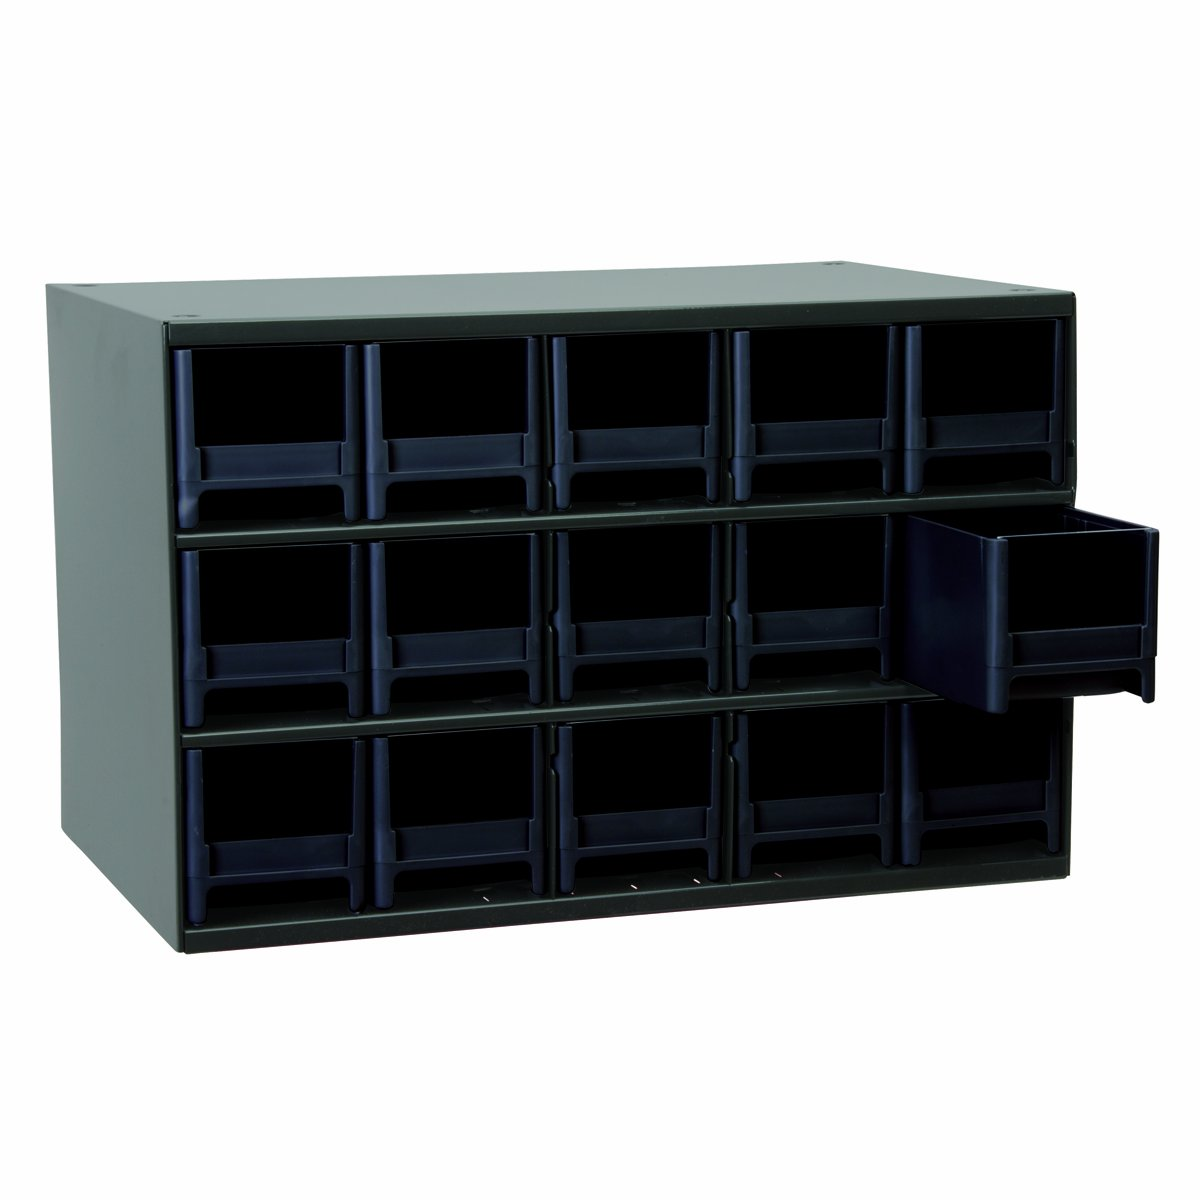 Akro-Mils 19715 17-Inch W by 11-Inch H by 11-Inch D 15 Drawer Steel Parts Storage Hardware and Craft Cabinet, Black Drawers by Akro-Mils